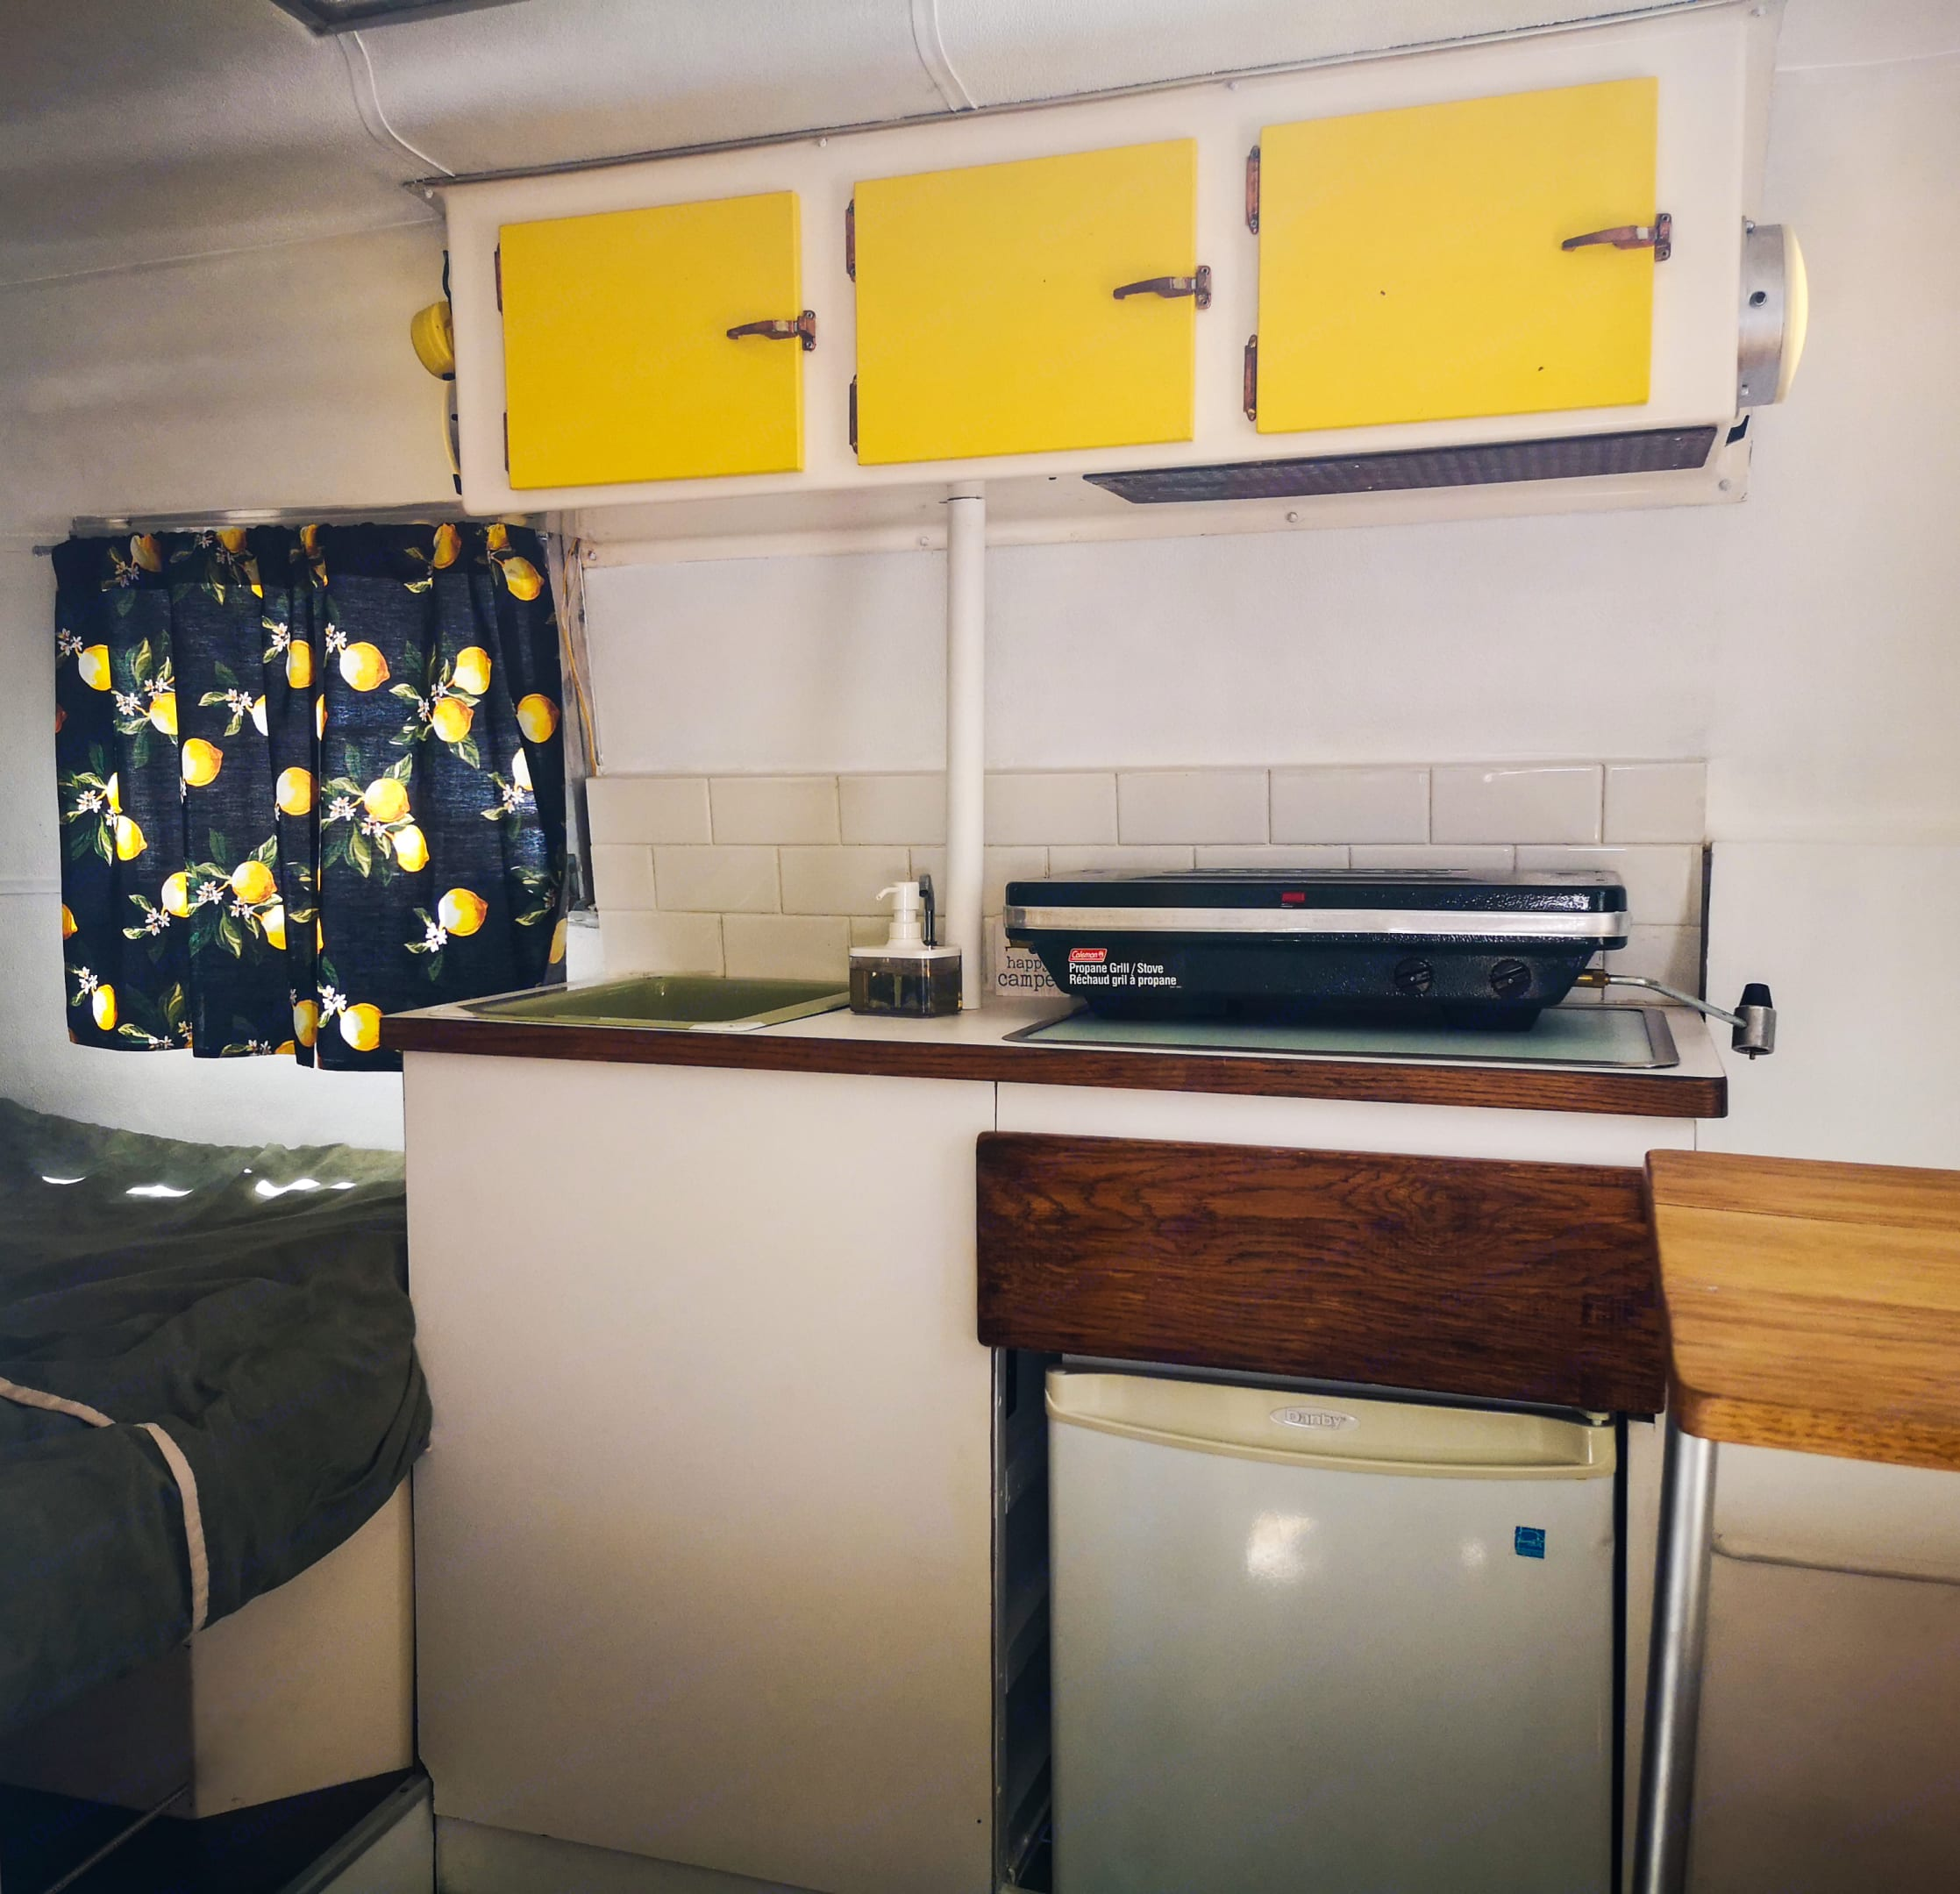 Potable water and pump faucet, small fridge (requires camper to be plugged in) and portable propane cooker that can be removed for extra counter space. Other Other 1974